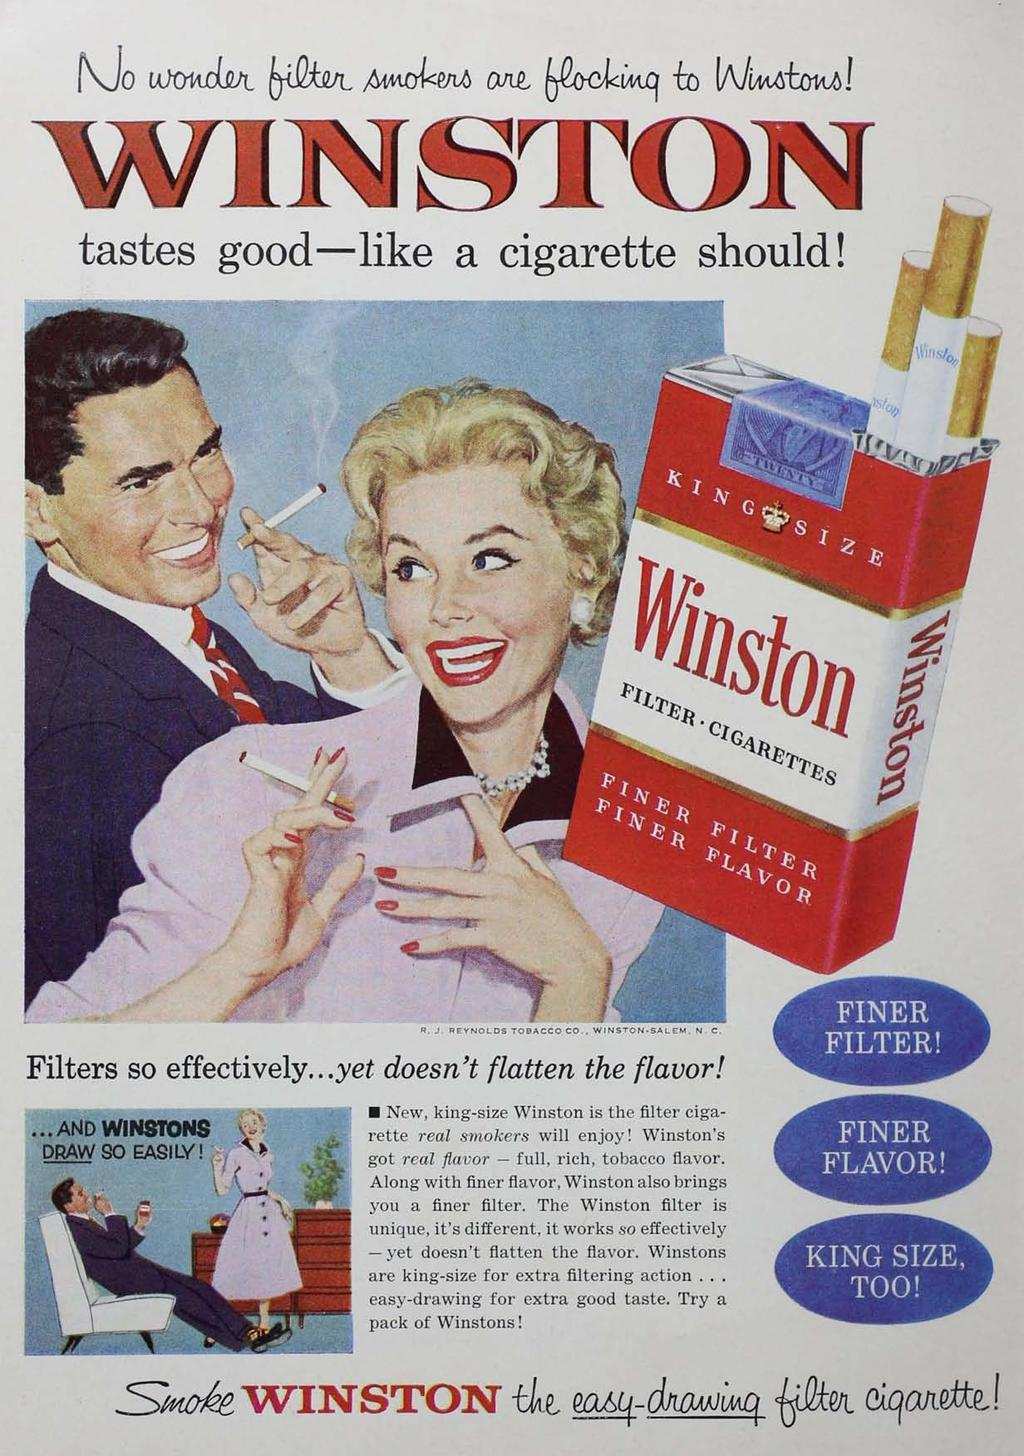 tastes good -like a cigarette should! Filters so effectively... yet doesn't flatten the flavor!... ANDWlN8IOH8 DRAW 90 (;AgILY!